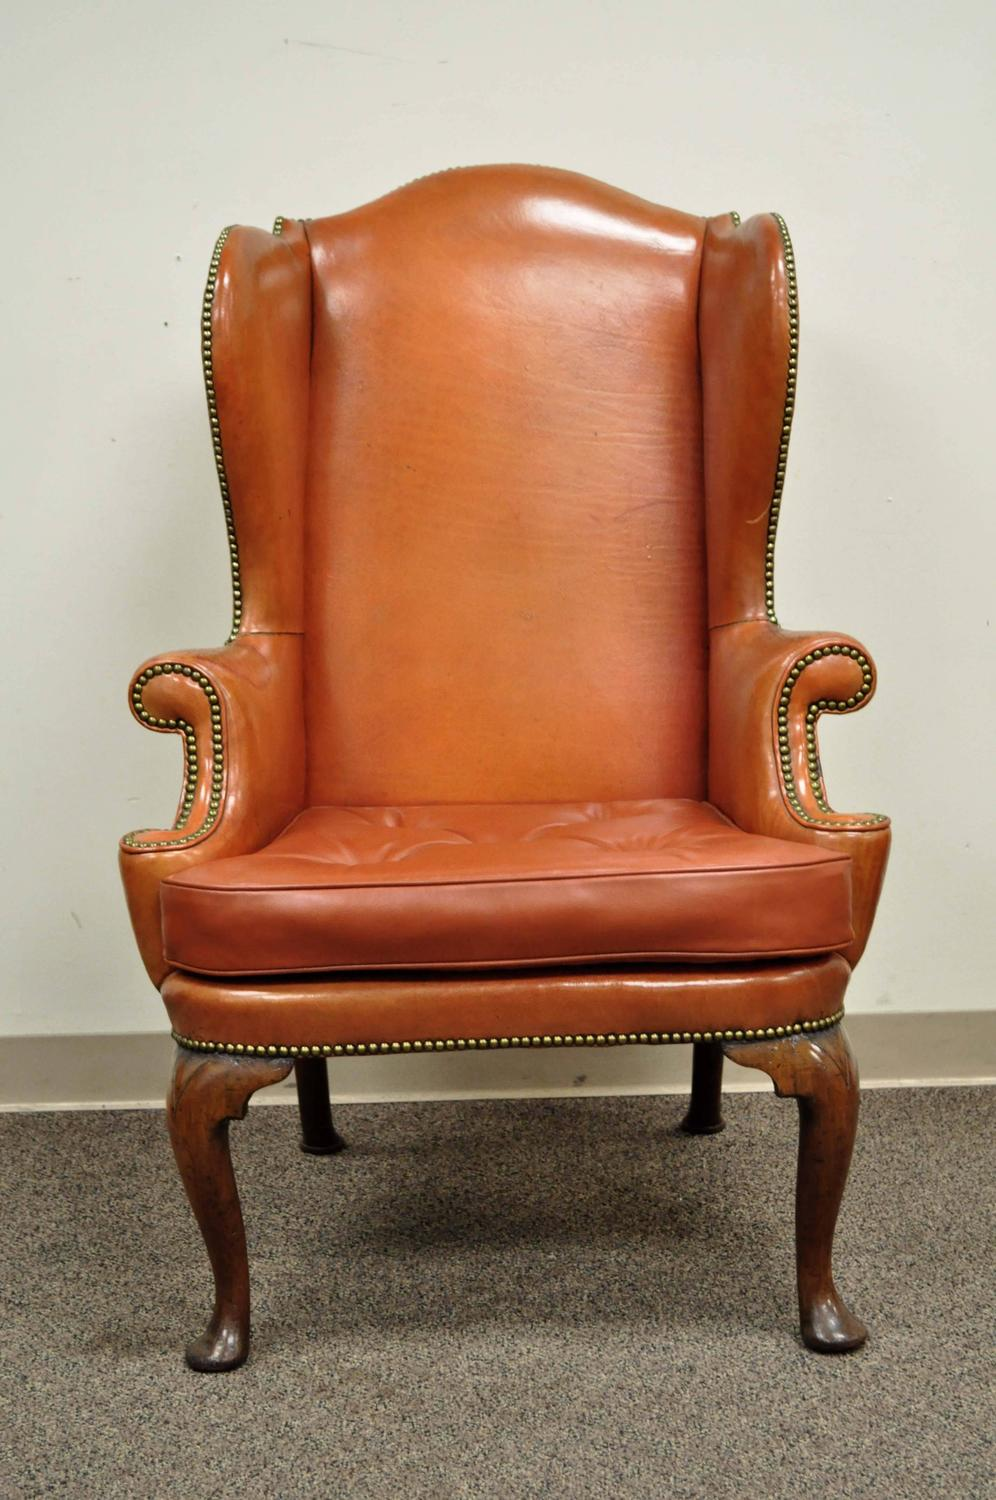 Antique 19th Century Burnt Orange Distressed Leather English Wingback Chair For Sale At 1stdibs